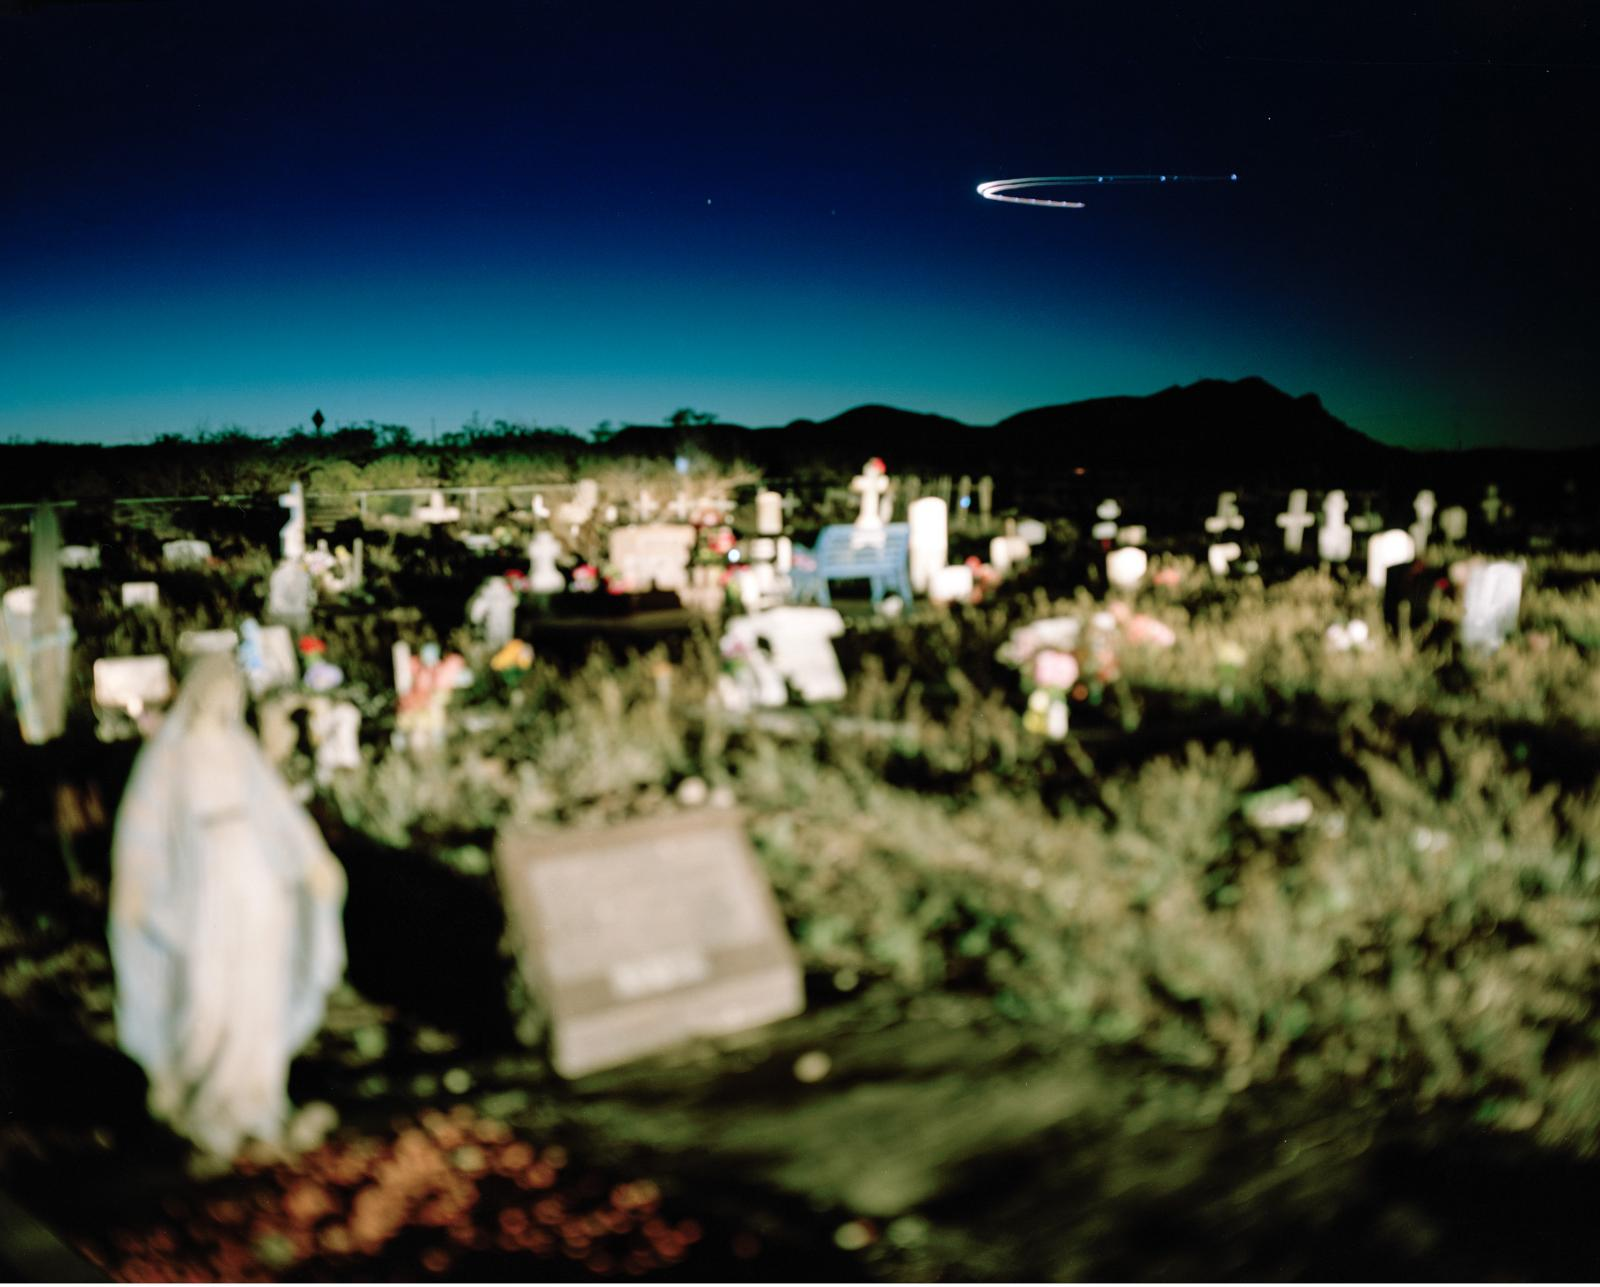 Luis Lopez Cemetery, New Mexico, USA, April 2, 2016  Luis Lopez is a town in one of four counties being studied for health impacts resulting from radiation fallout from the 1945 Trinity Atomic test. Unlike residents of Nevada and Utah, those in New Mexico have never been acknowledged or covered under the Radiation Exposure Compensation Act.  Luis Lopez residents say dozens of people in the cemetery died of cancer and wonder if it is linked to the Trinity test. Residents within 150 miles of the Trinity site show higher incidents of cancer than in other parts of New Mexico according to a health impact study released in 2017 by the Tularosa Basin Downwinders Consortium.